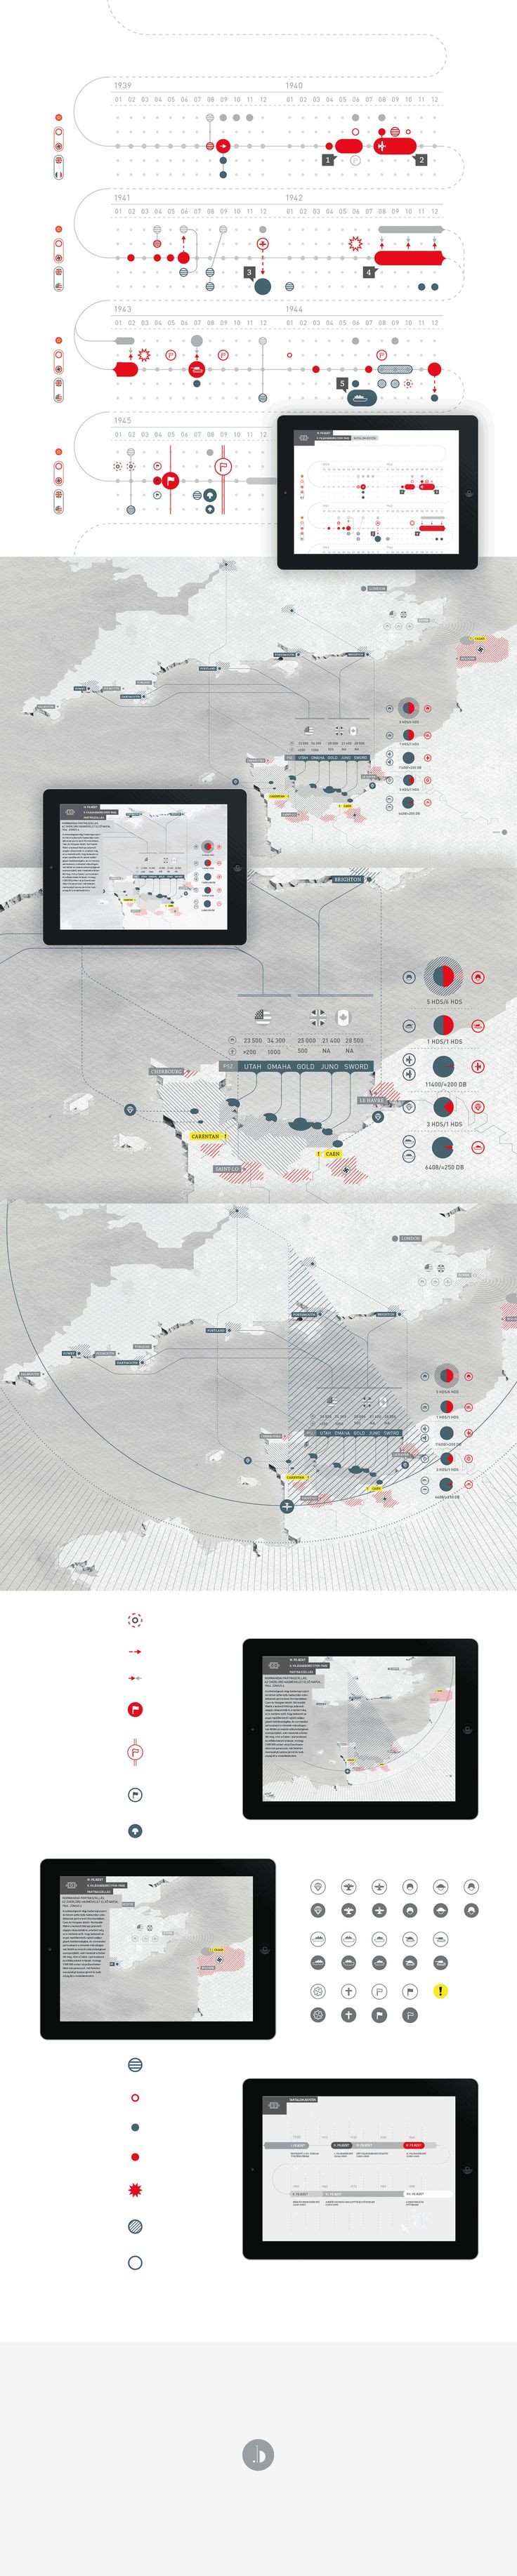 Diploma Project World War II Infographic